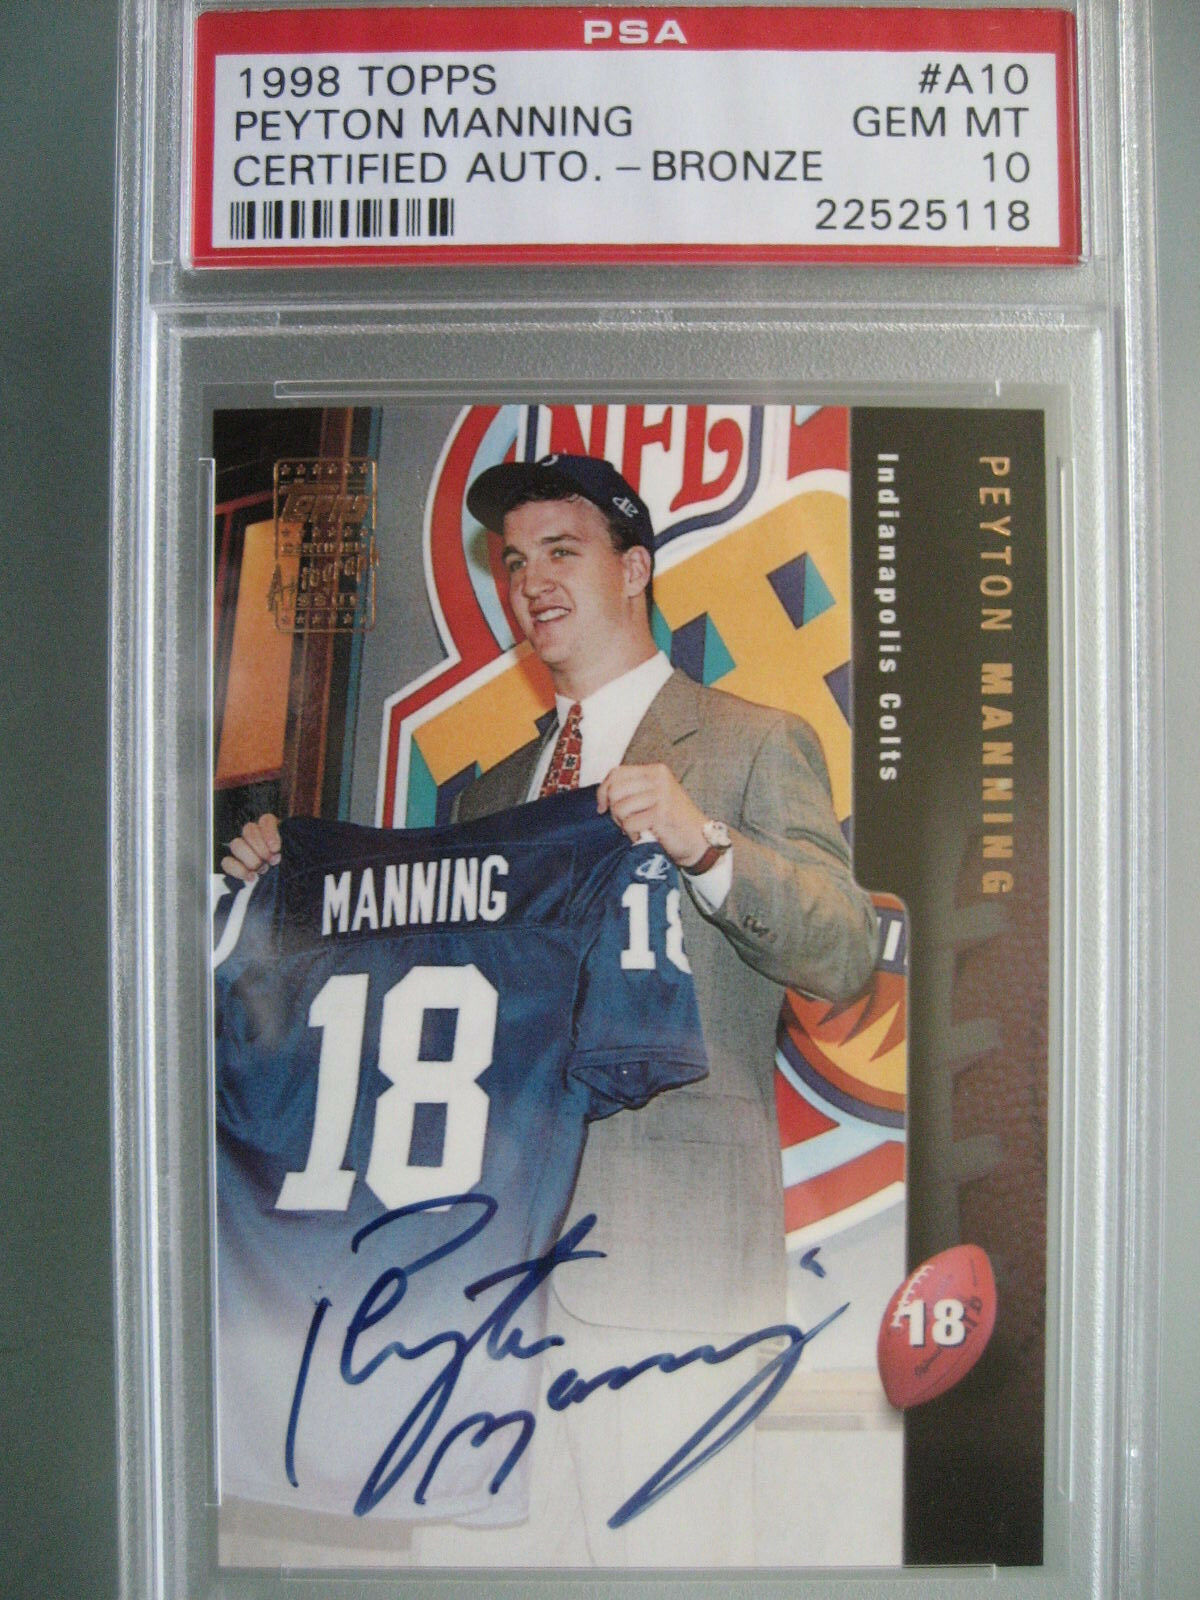 1998 Topps Bronze Certified #A10 Peyton Manning Auto Rookie Rc PSA 10 Gem Mint